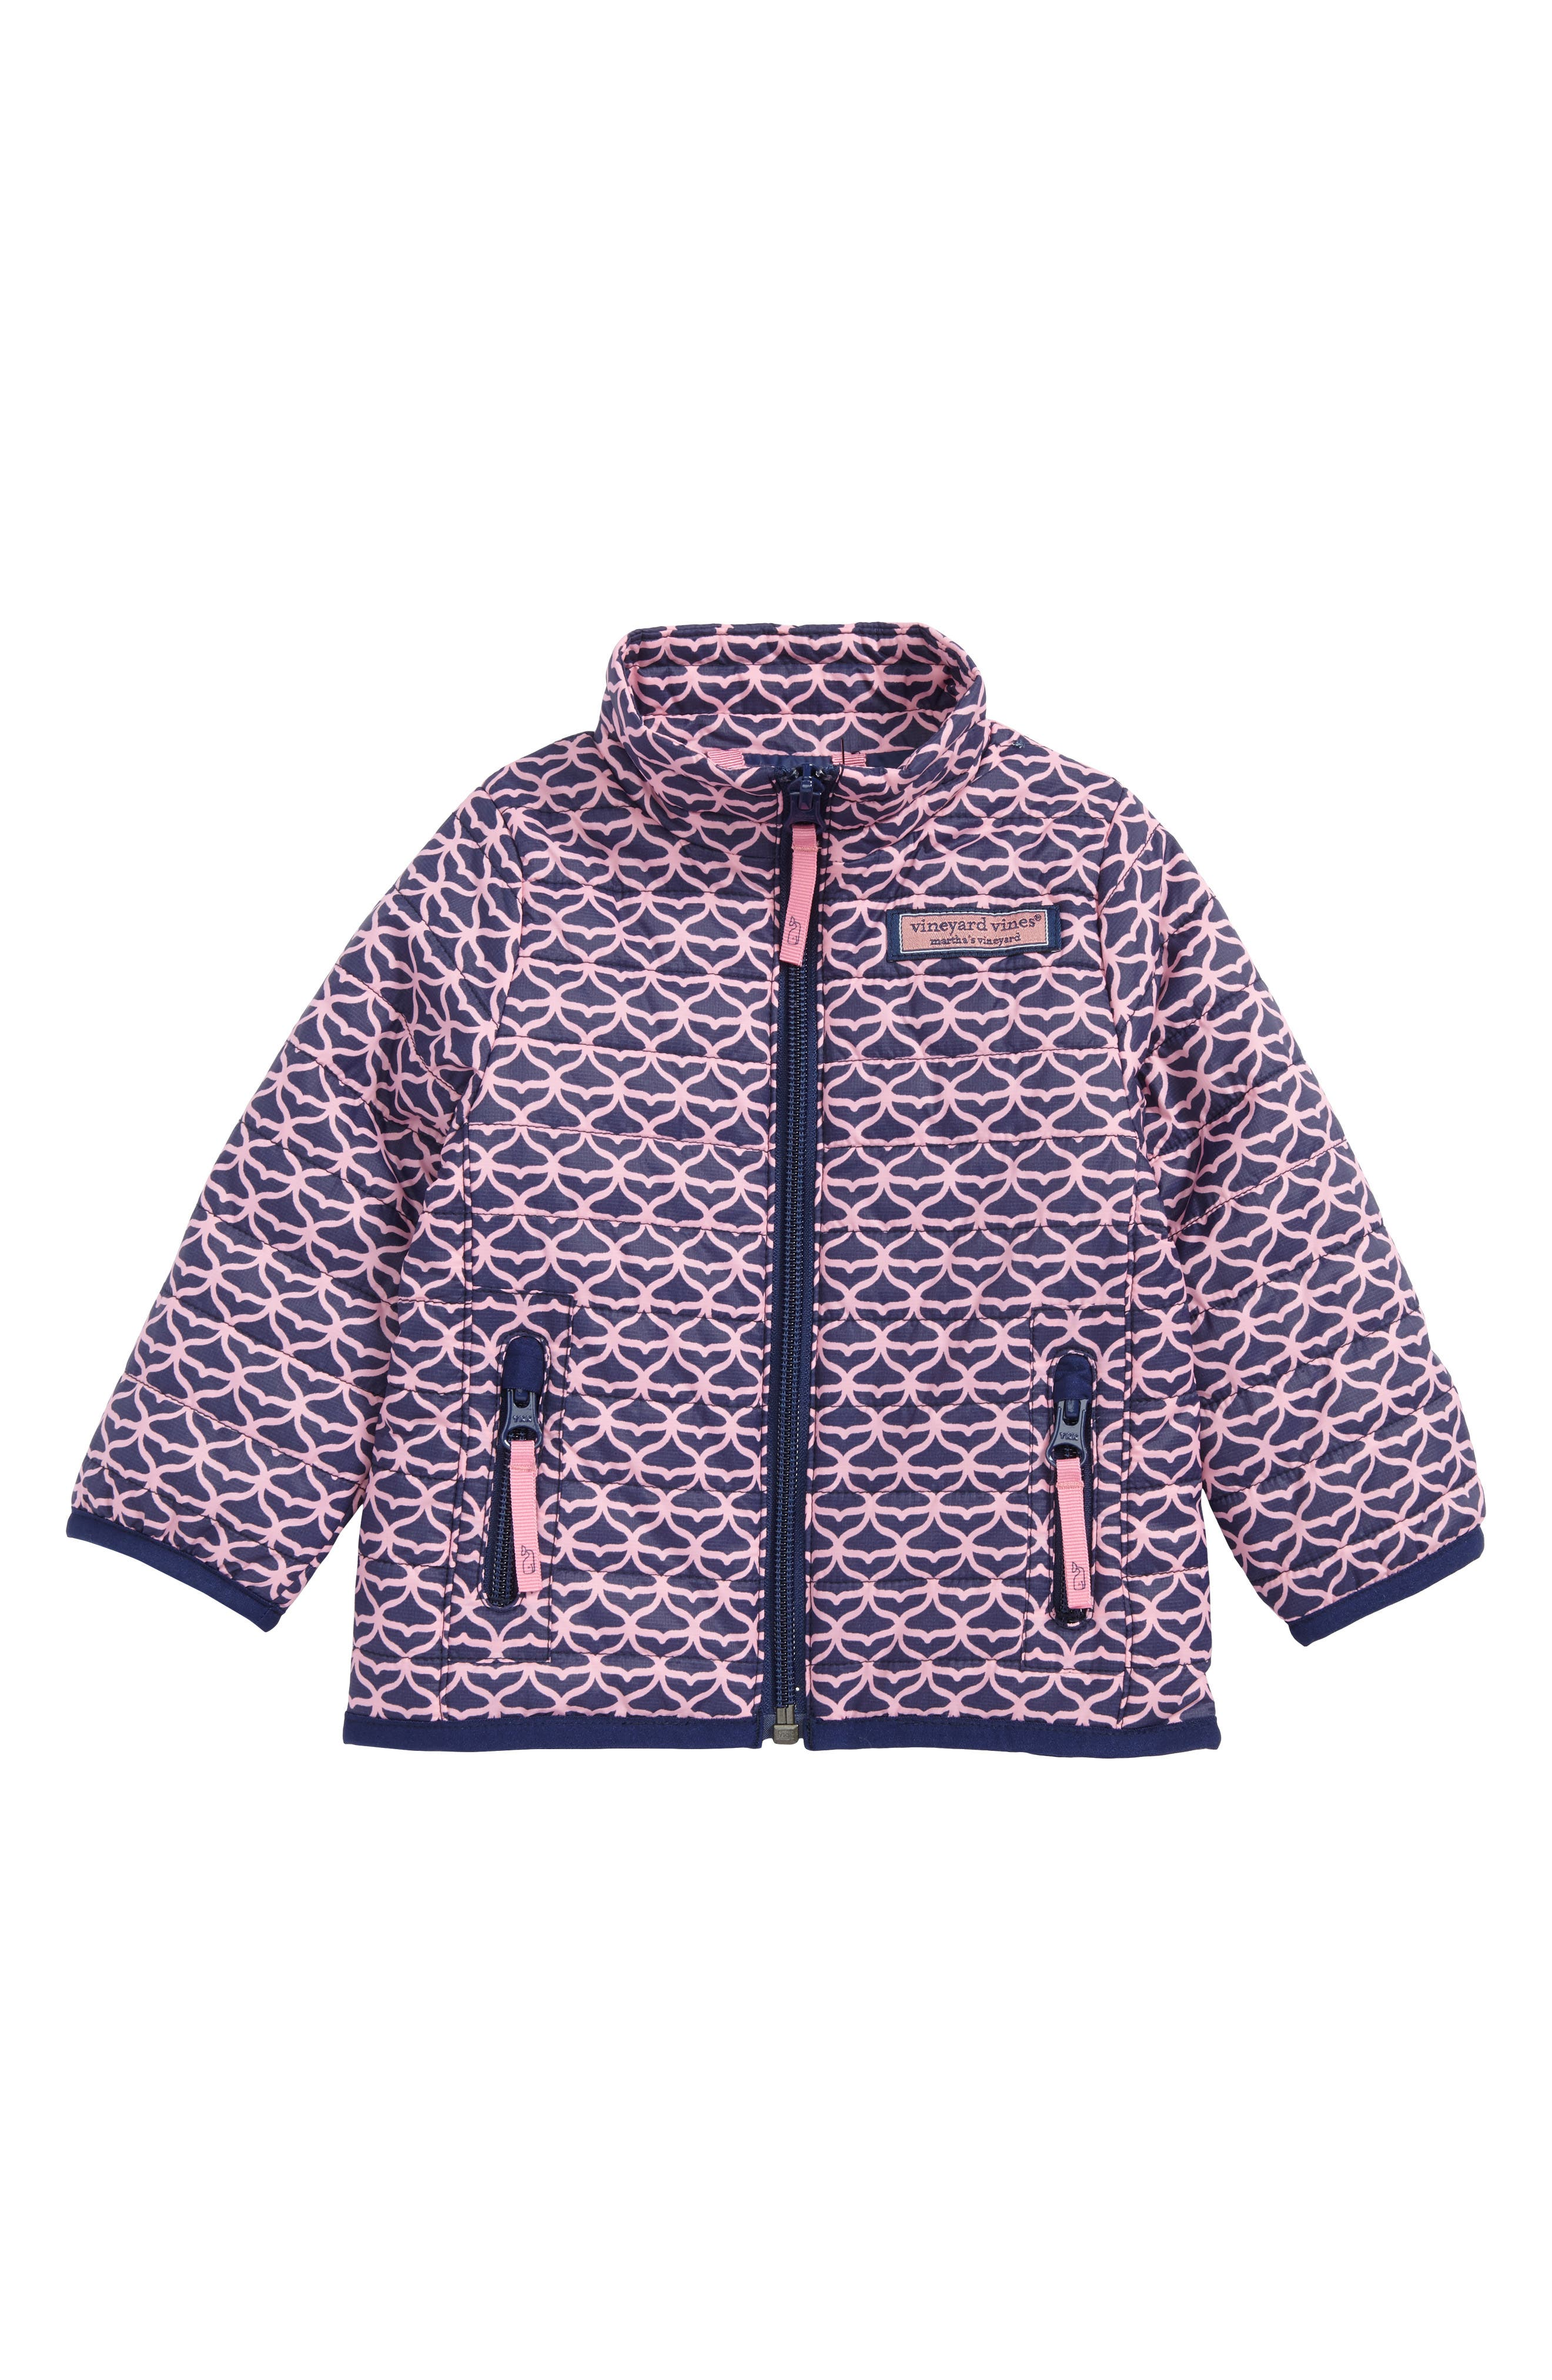 Whale Tail Mountain Weekend Quilted Jacket,                             Main thumbnail 1, color,                             Deep Bay